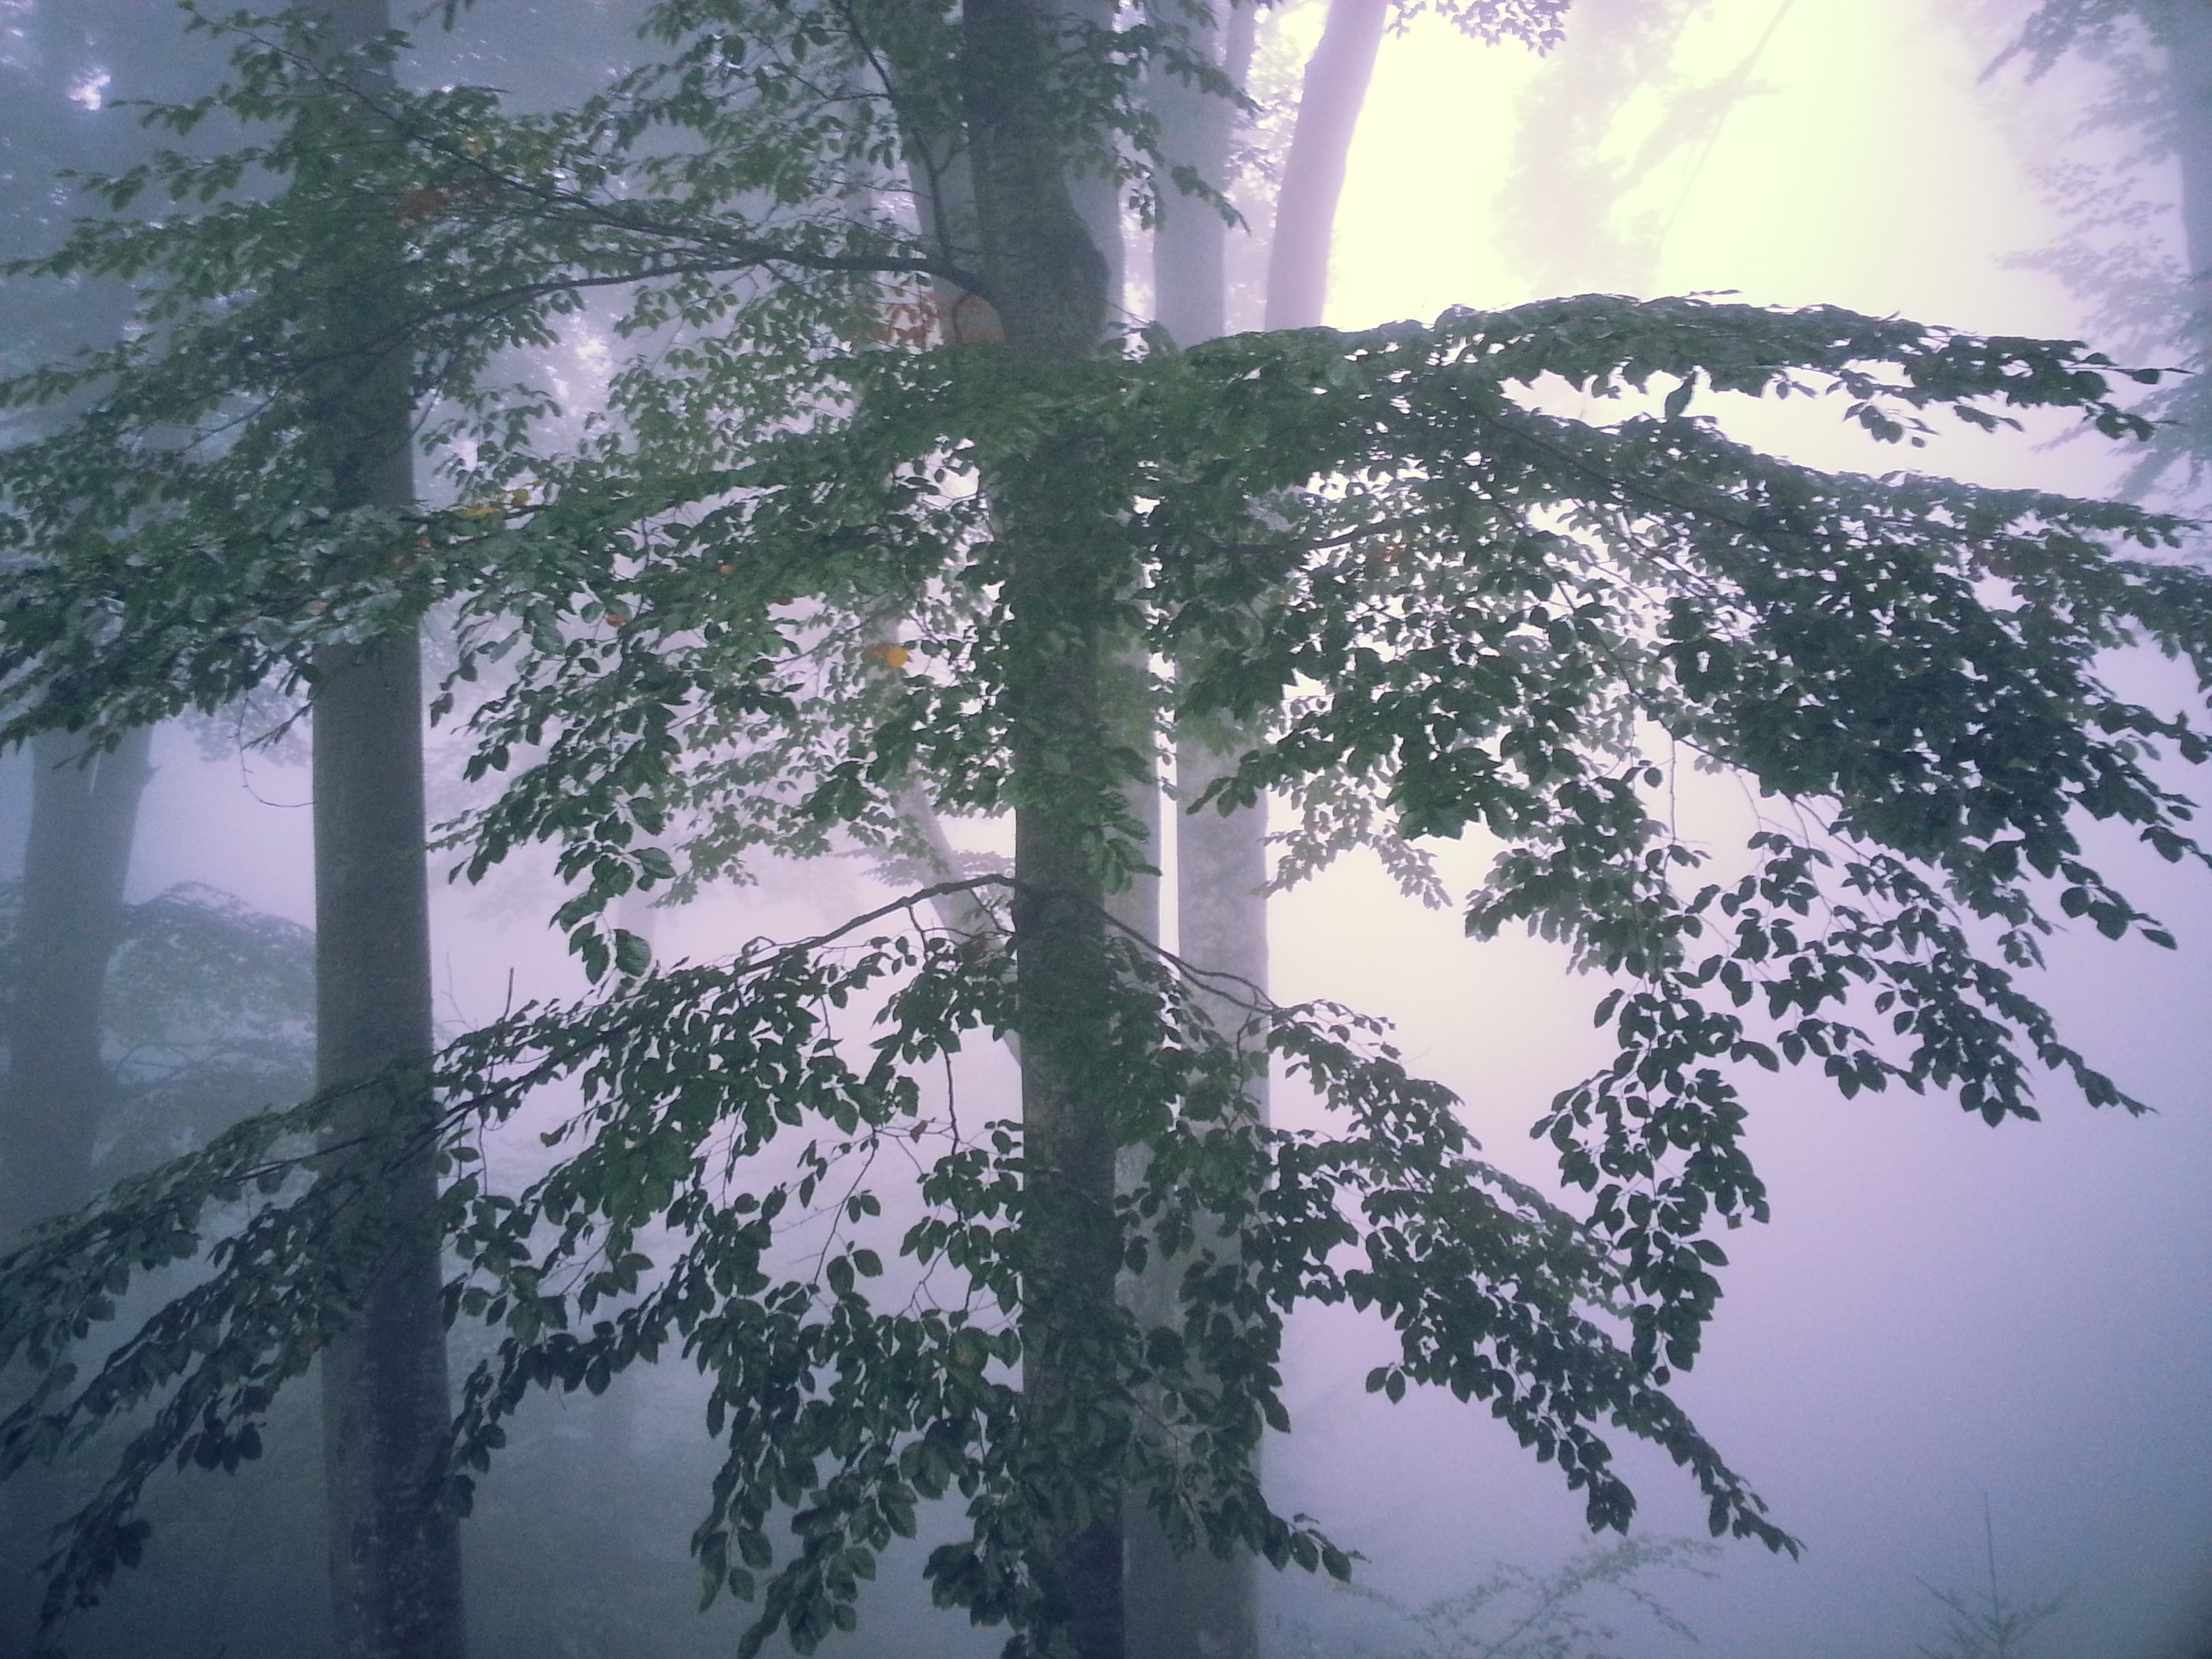 Trees in a forest in a purple-hued mist